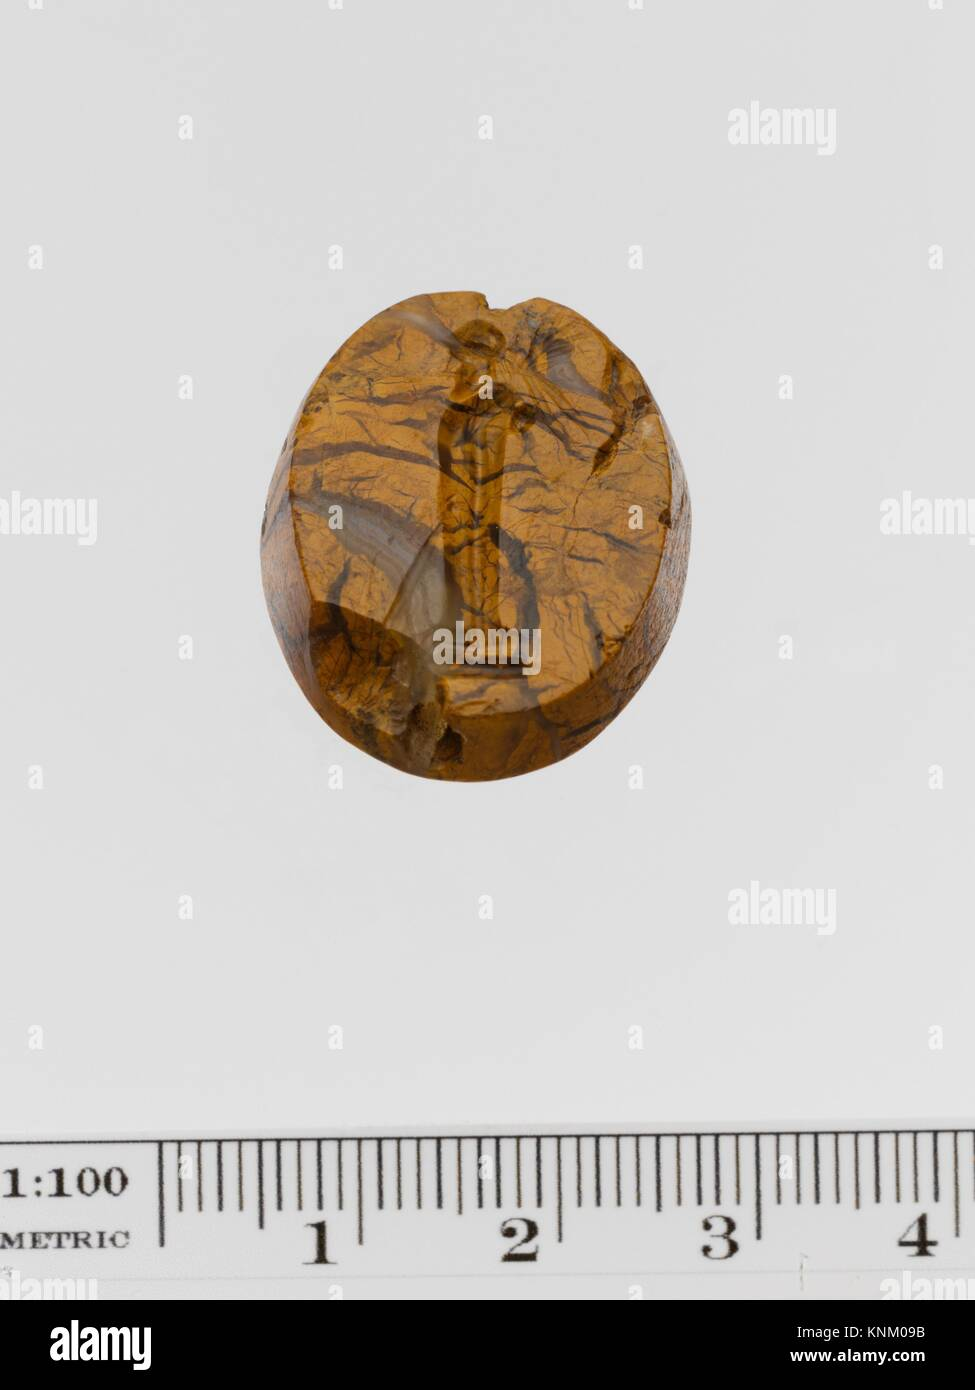 Mottled yellow jasper scaraboid seal. Period: Late Classical; Date: 4th century B.C; Culture: Greek; Medium: Jasper, Stock Photo